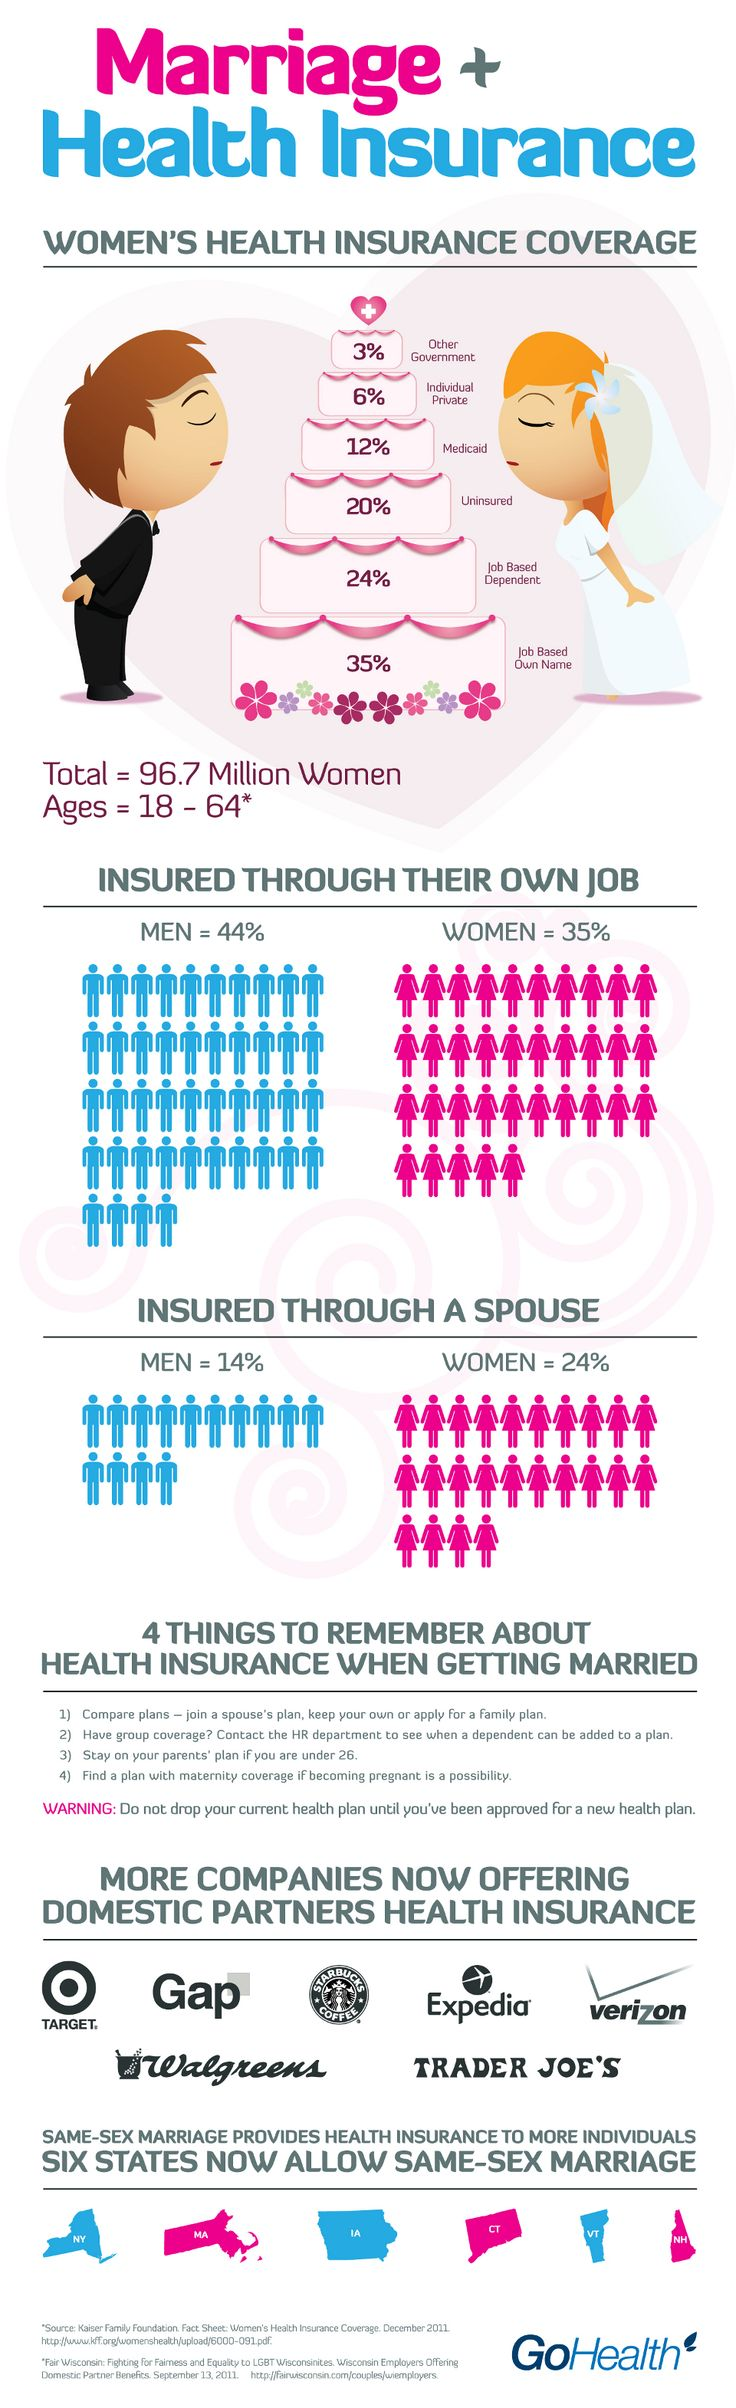 Marriage & Health Insurance New Visions Healthcare Blog